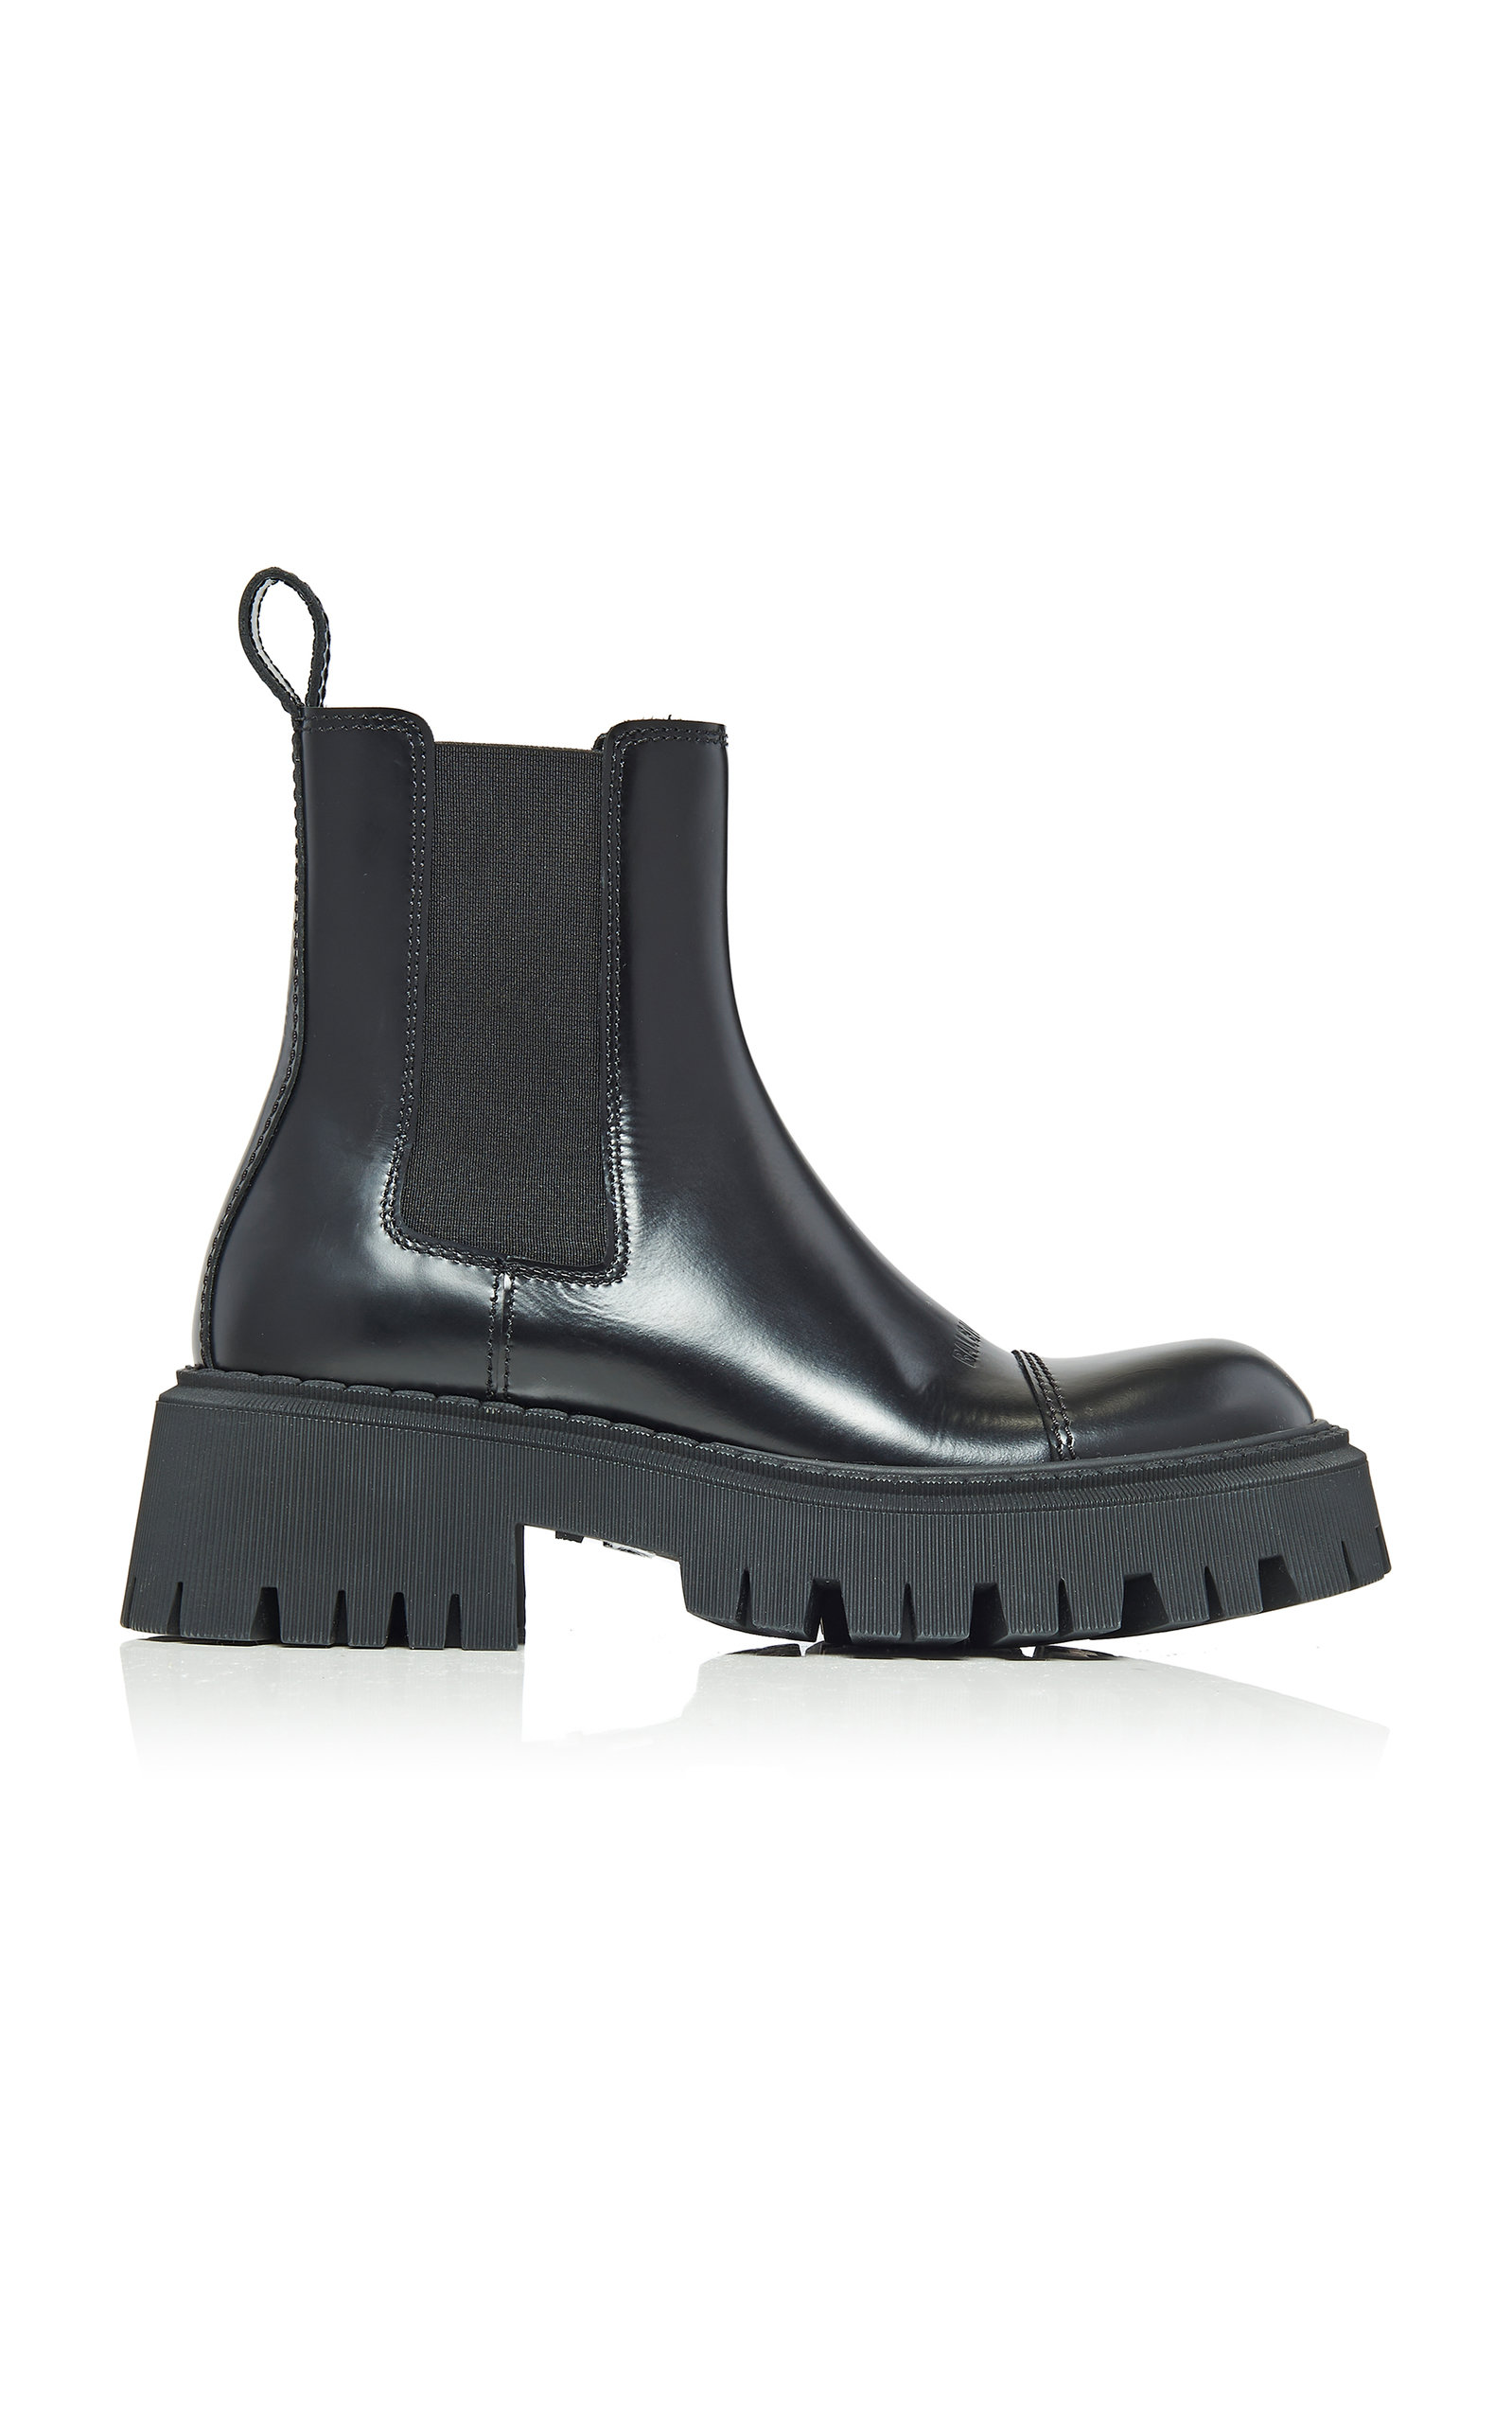 Balenciaga Leathers TRACTOR LEATHER PLATFORM ANKLE BOOTS